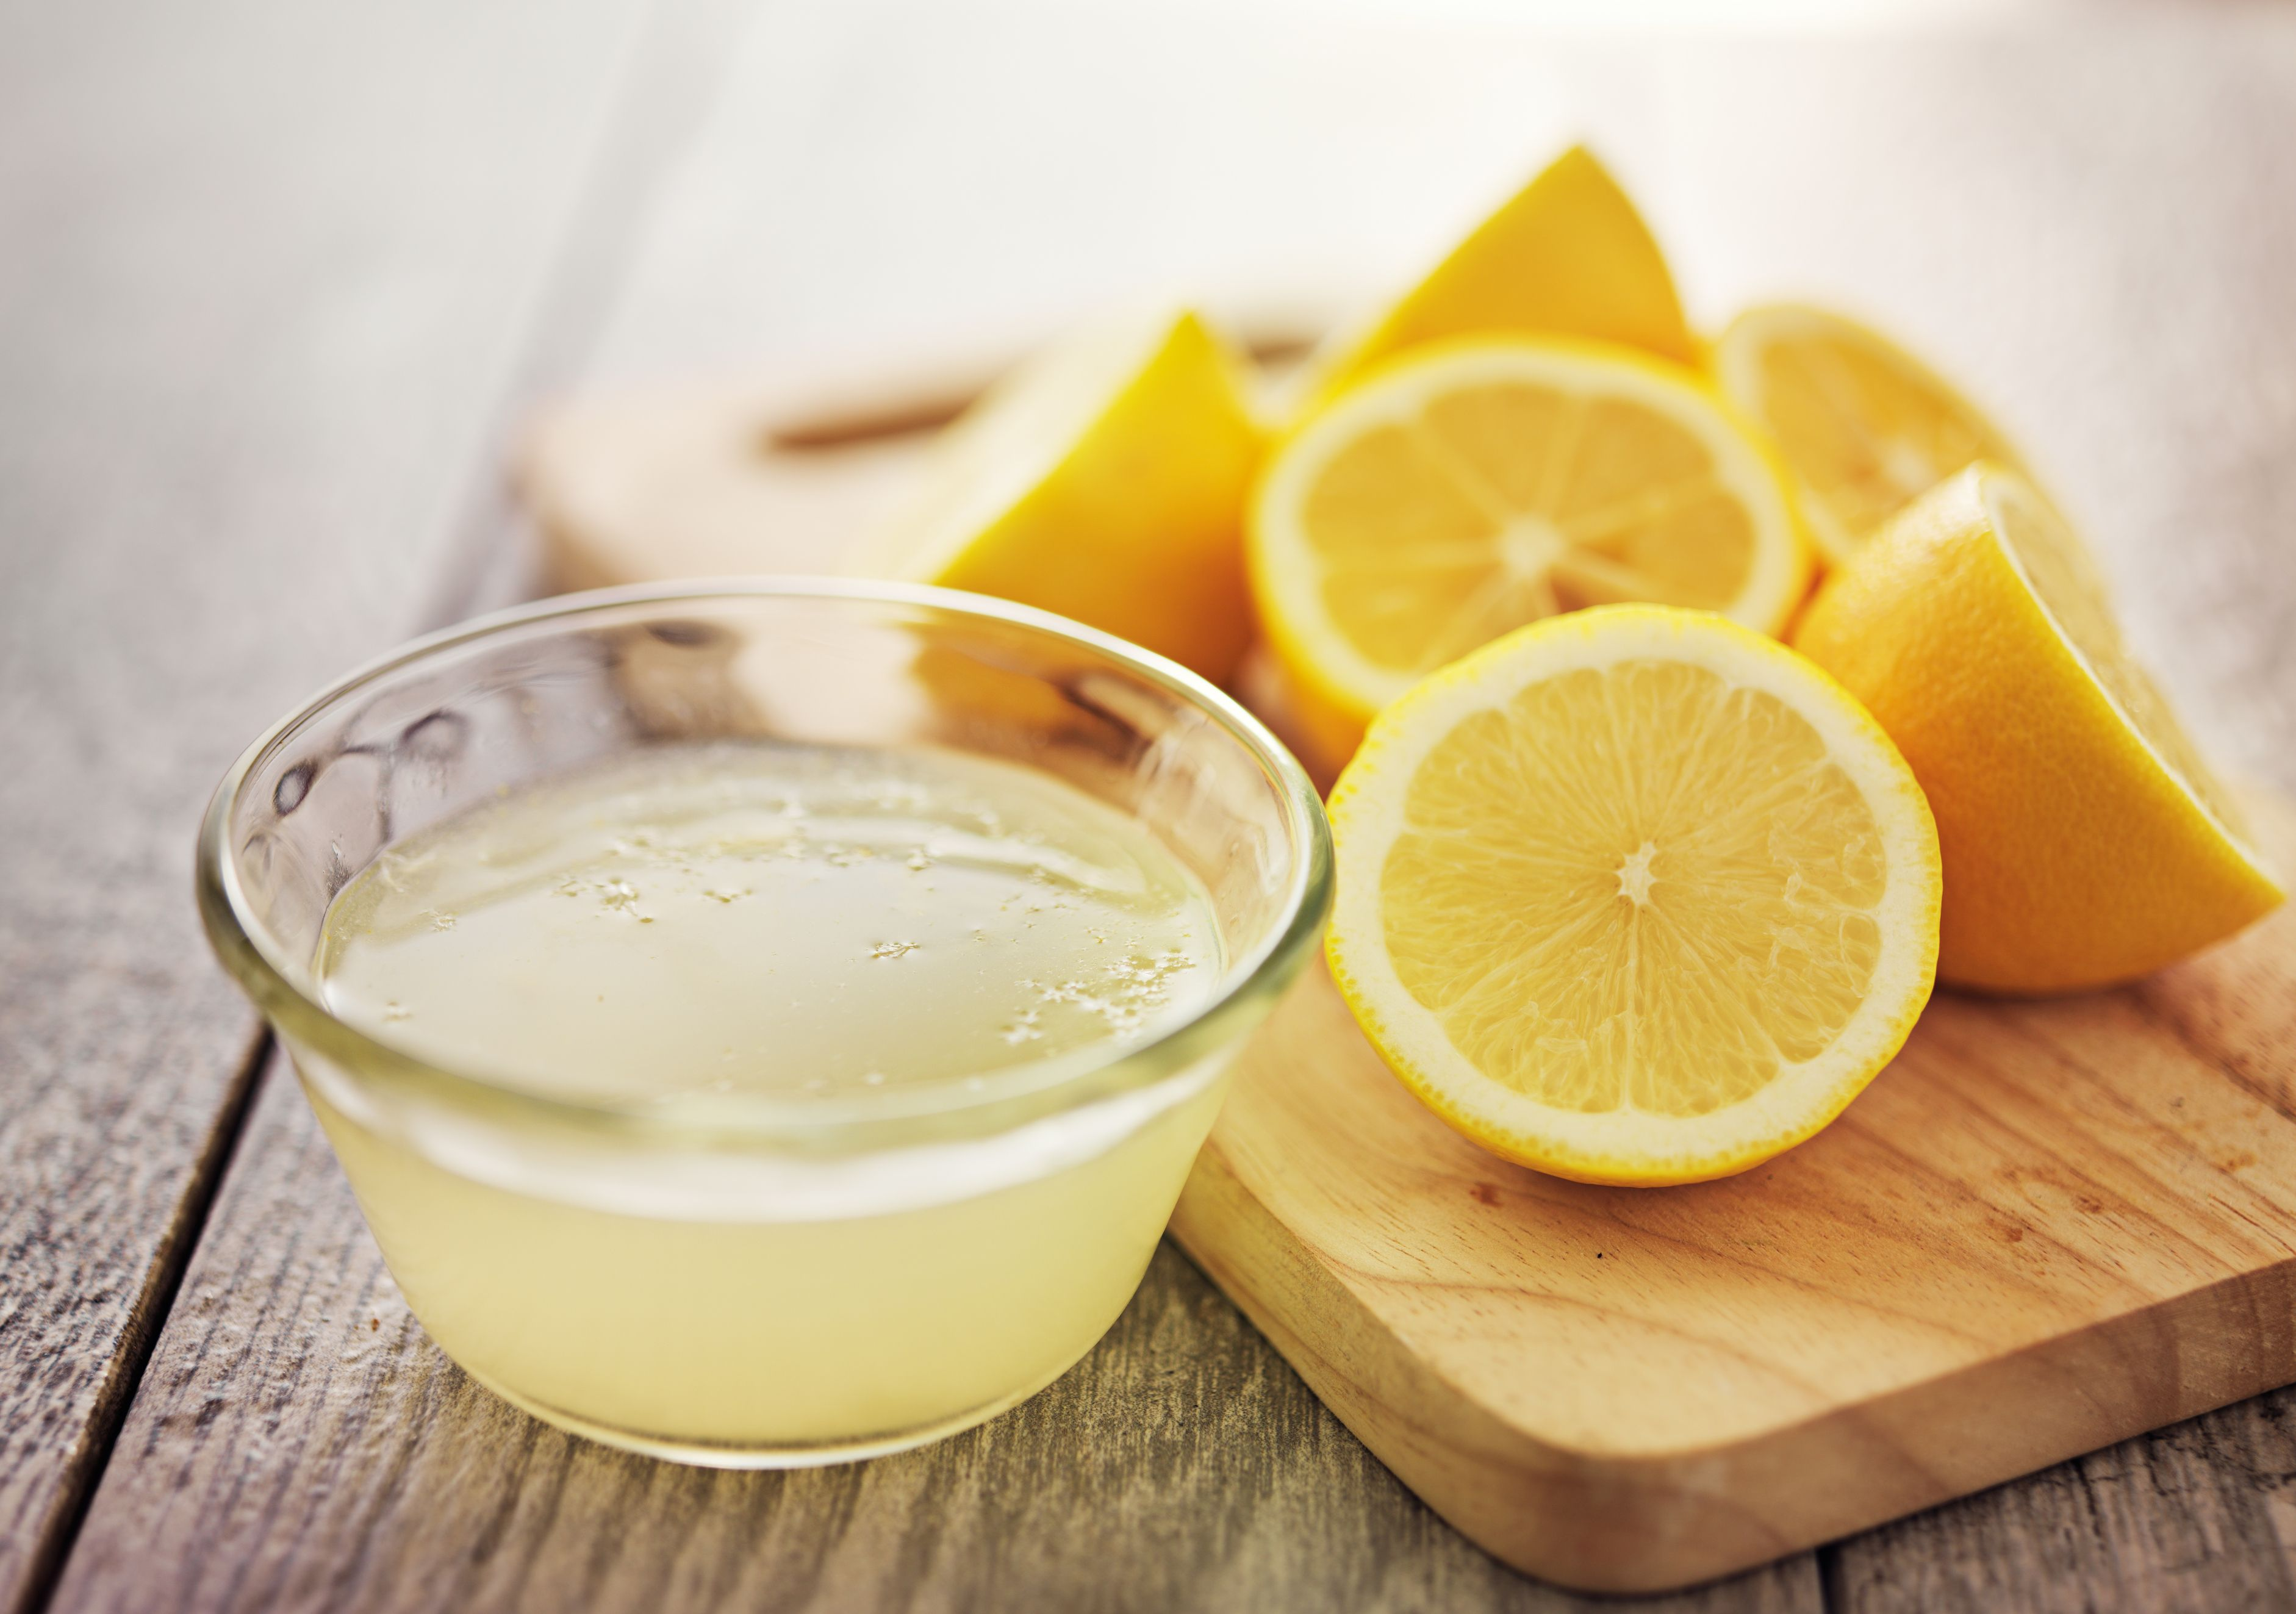 Putting Lemon Juice on My Face Helped Clear Up My Acne - Using Lemon Juice for Acne